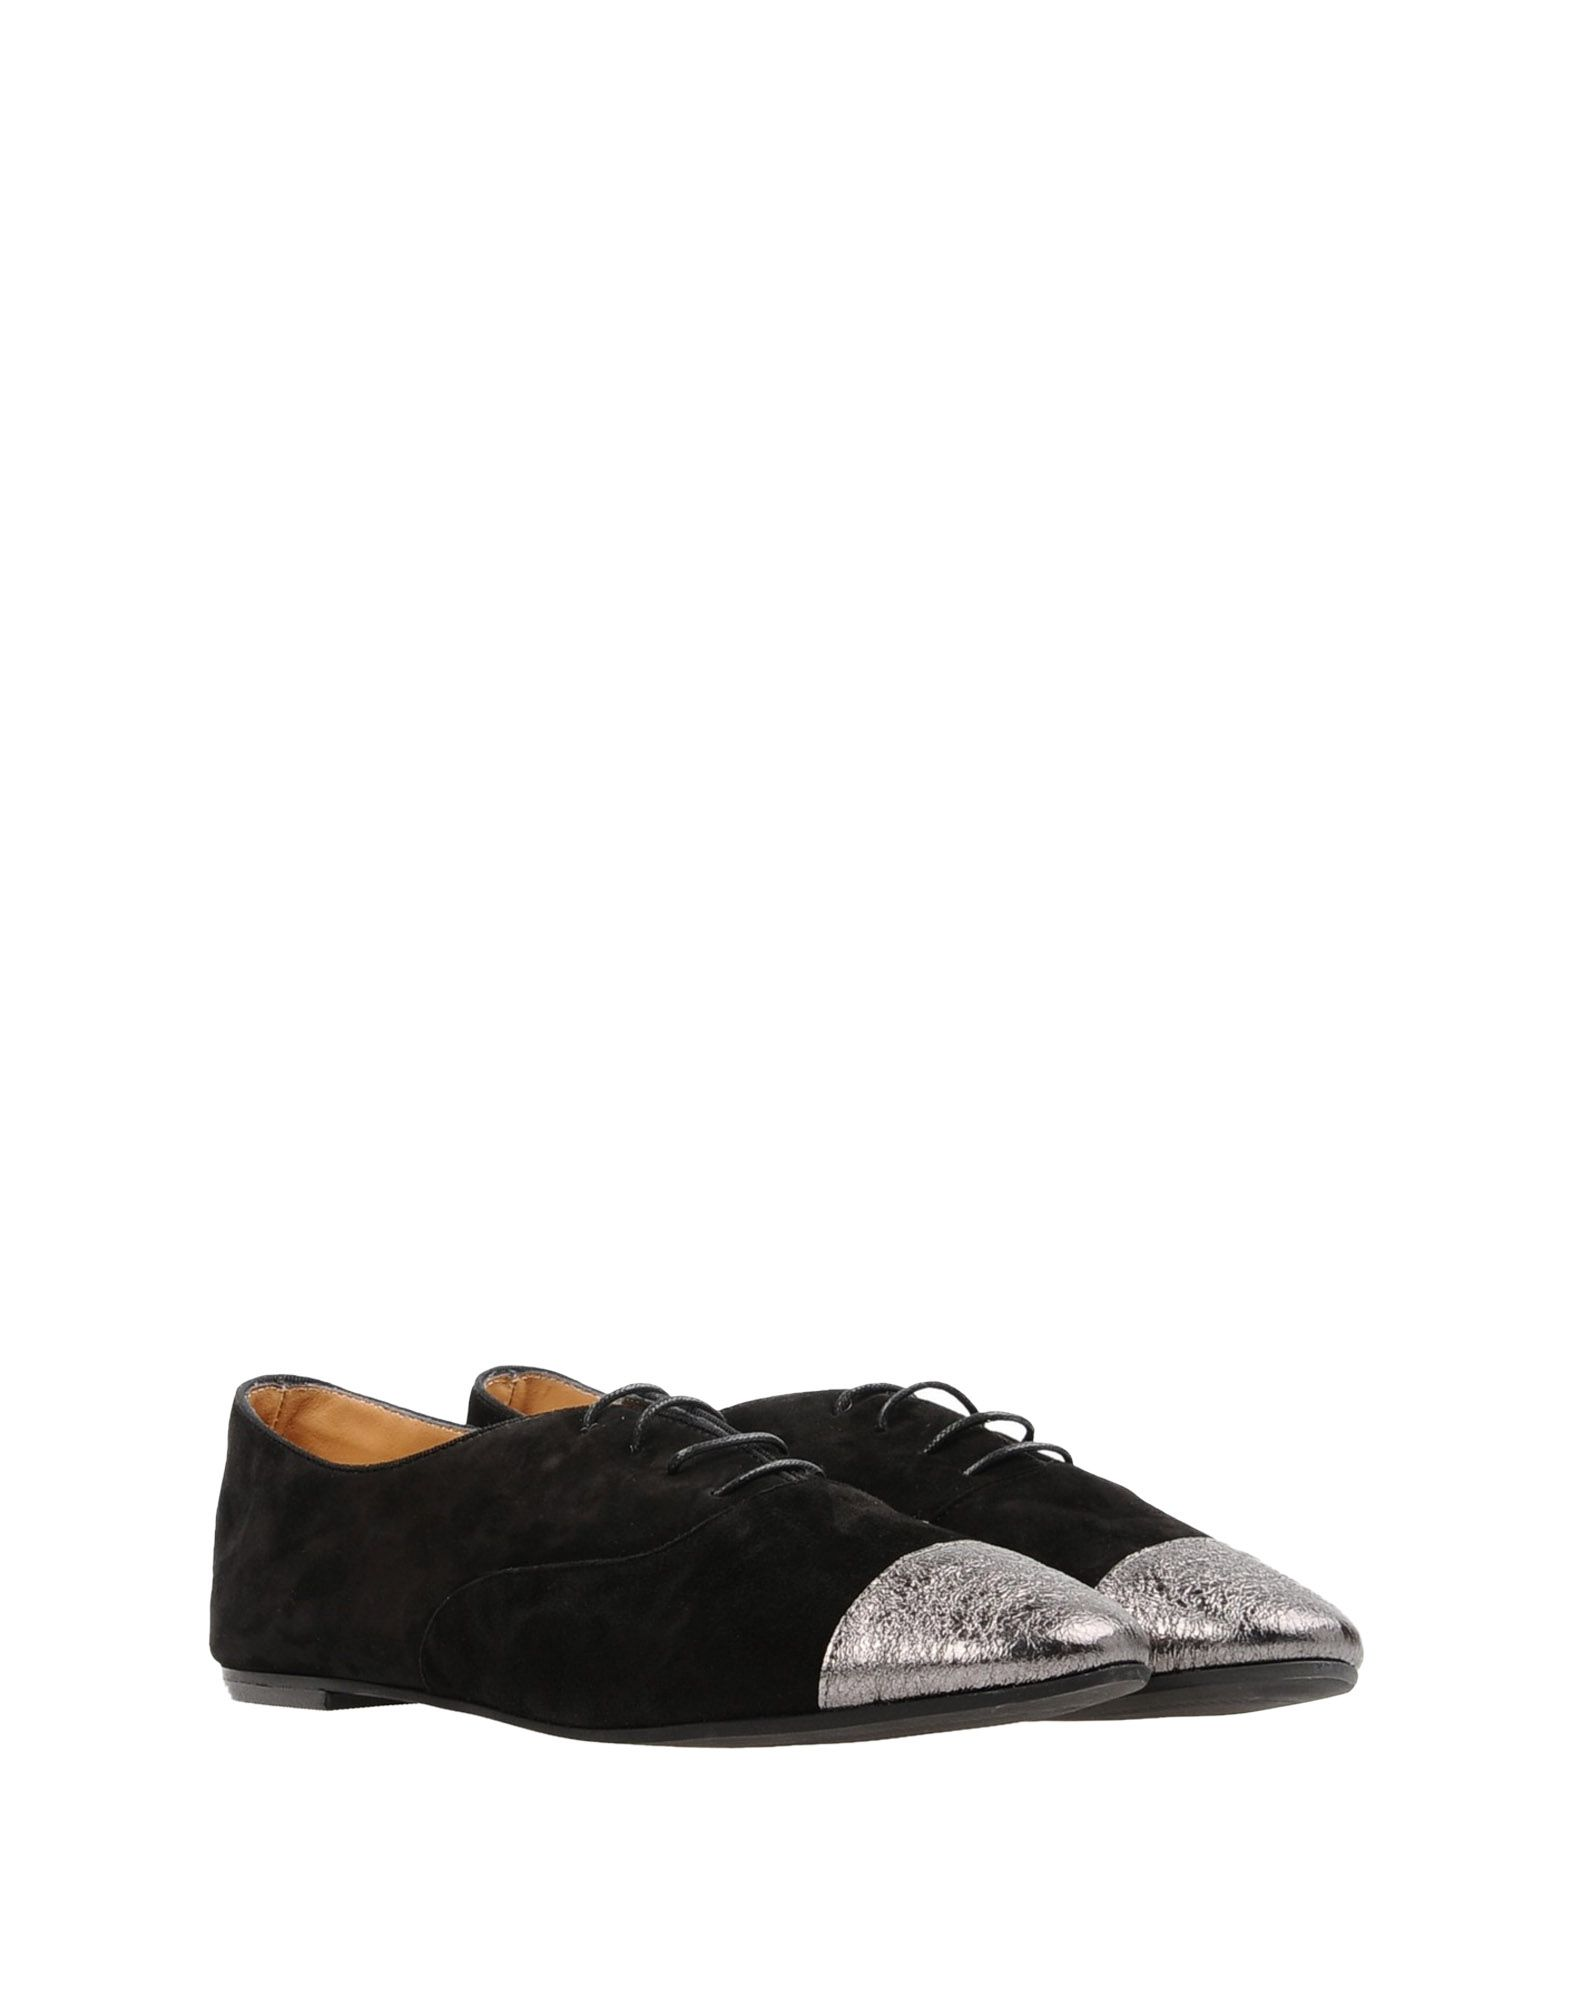 Chaussures À Lacets Stefano Gamba Femme - Chaussures À Lacets Stefano Gamba sur